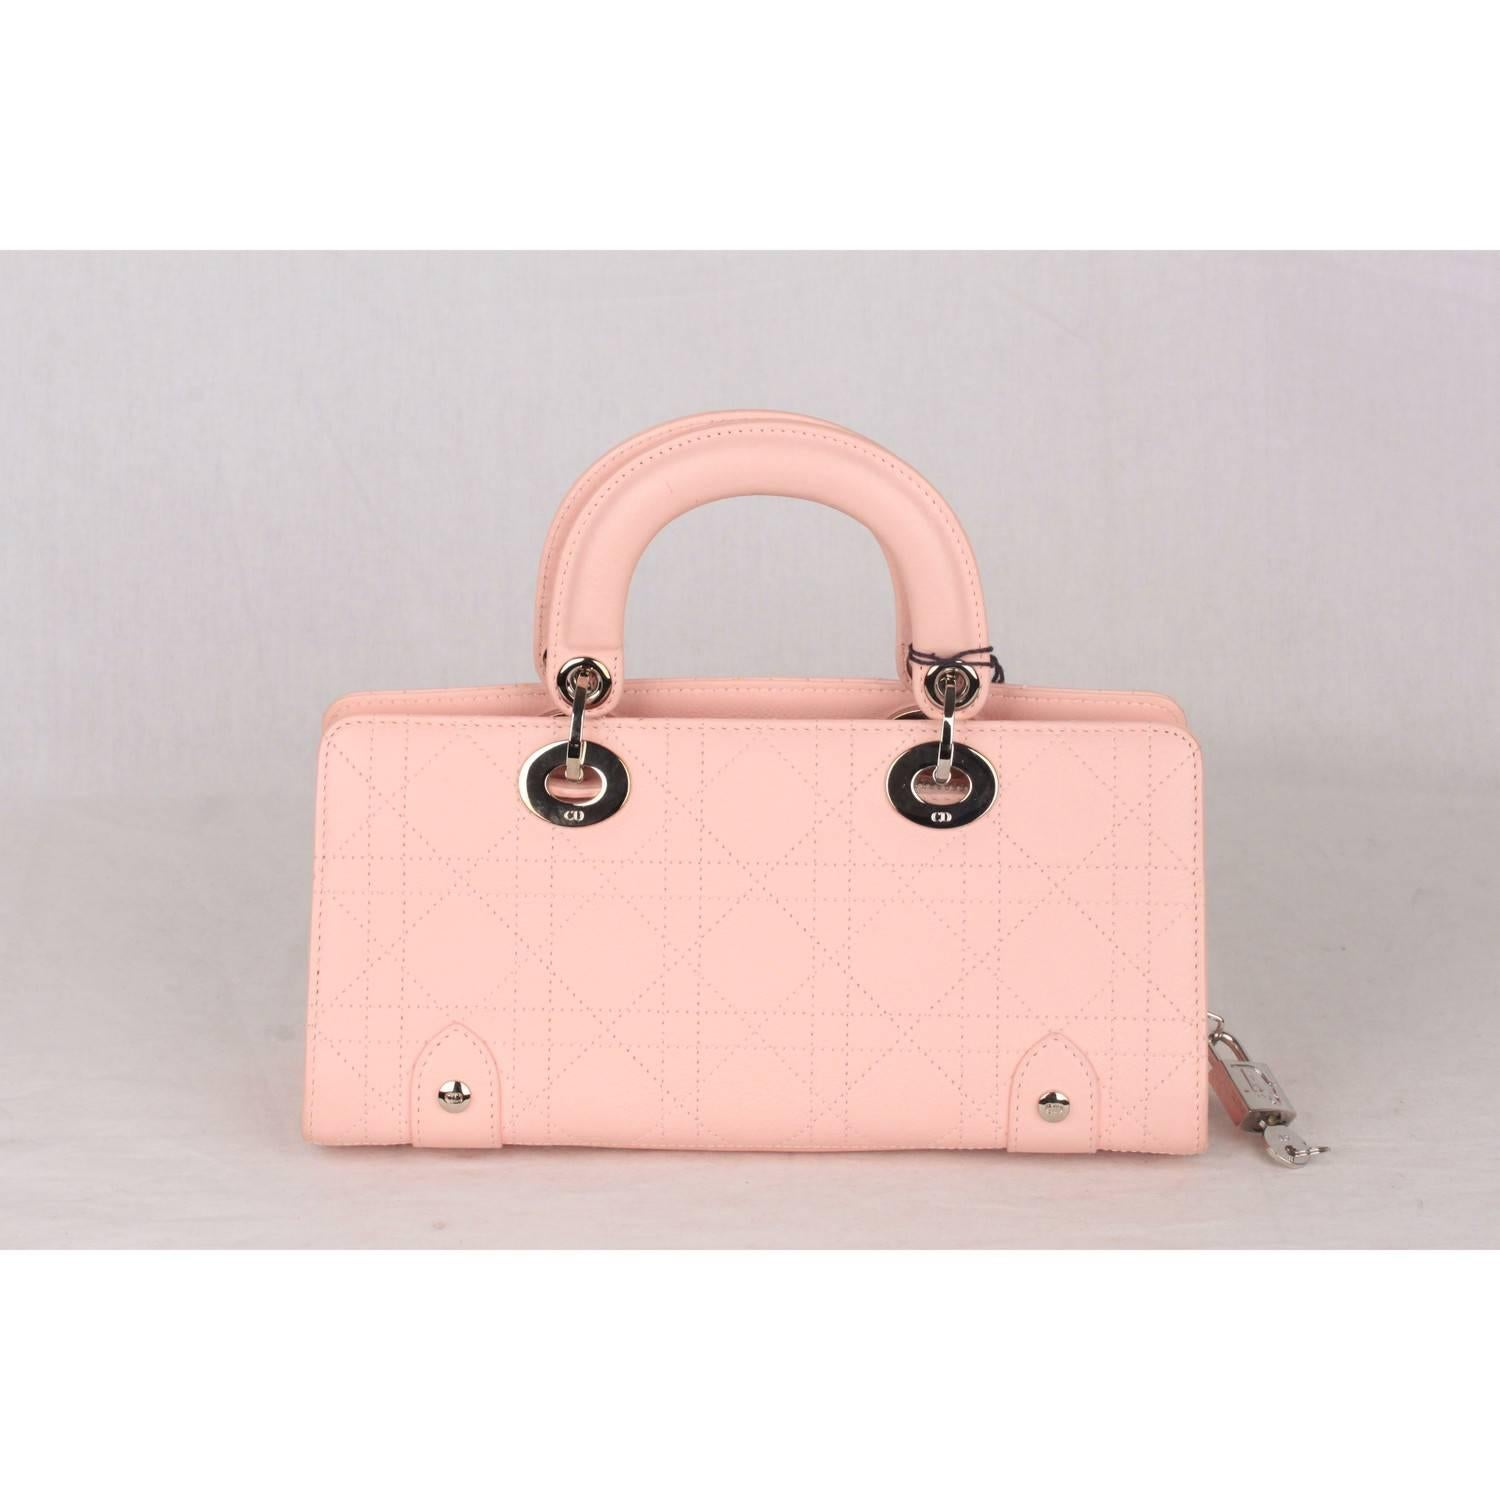 CHRISTIAN DIOR Baby Pink Cannage EAST WEST LADY DIOR Bag Small For Sale at  1stdibs 0d8d8d261989d